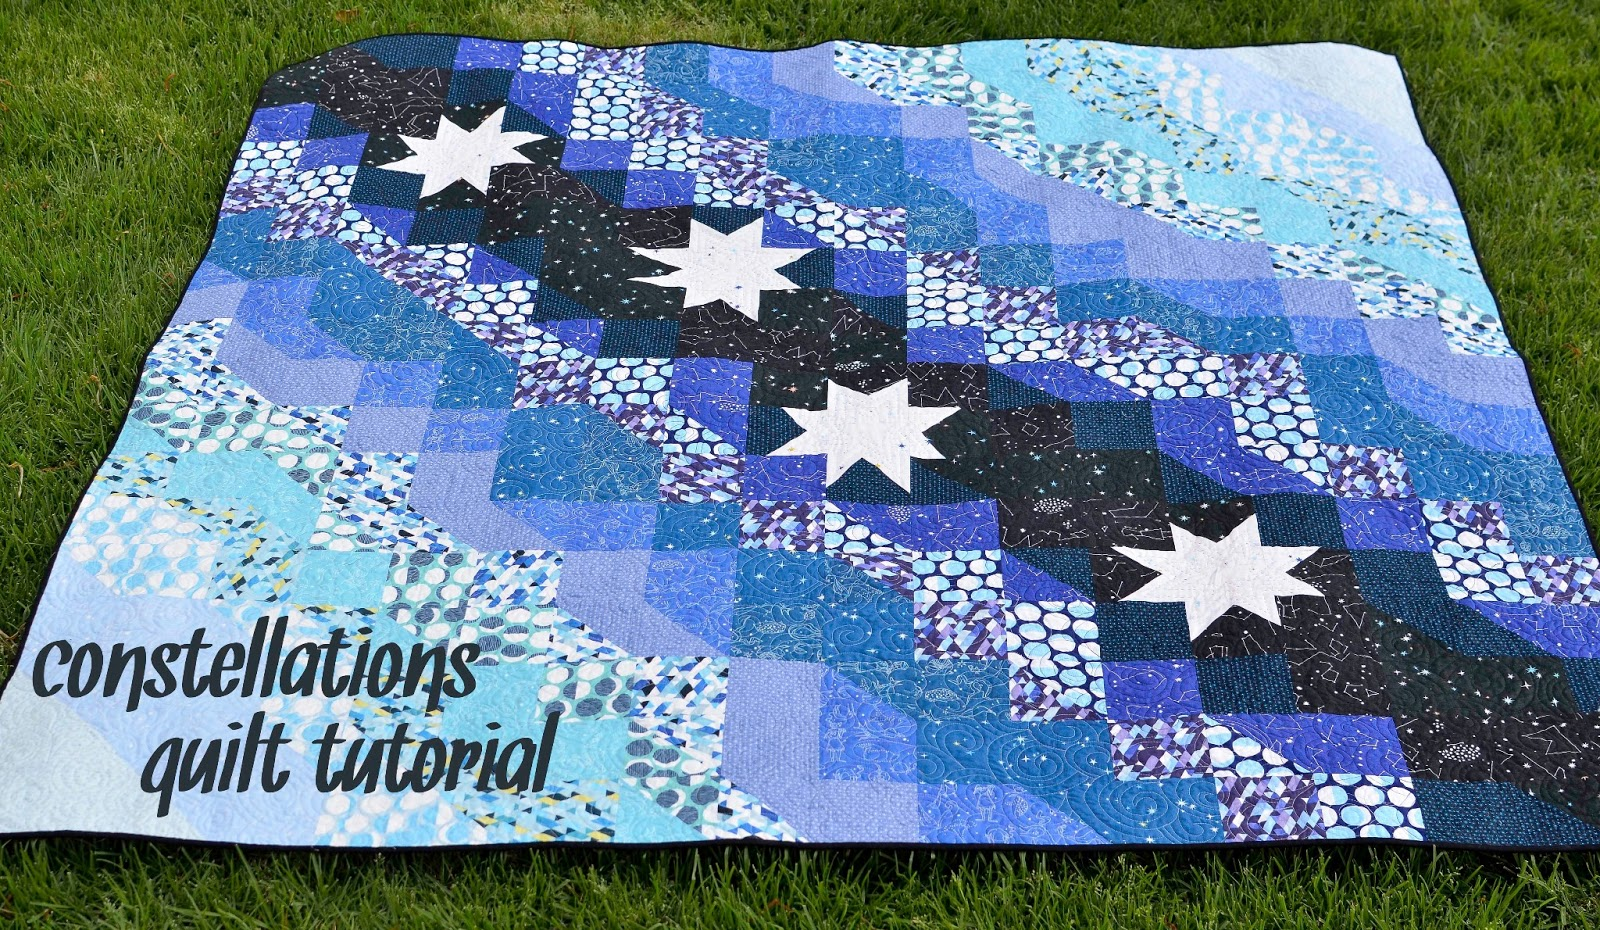 Constellations Quilt Tutorial | Kitchen Table Quilting